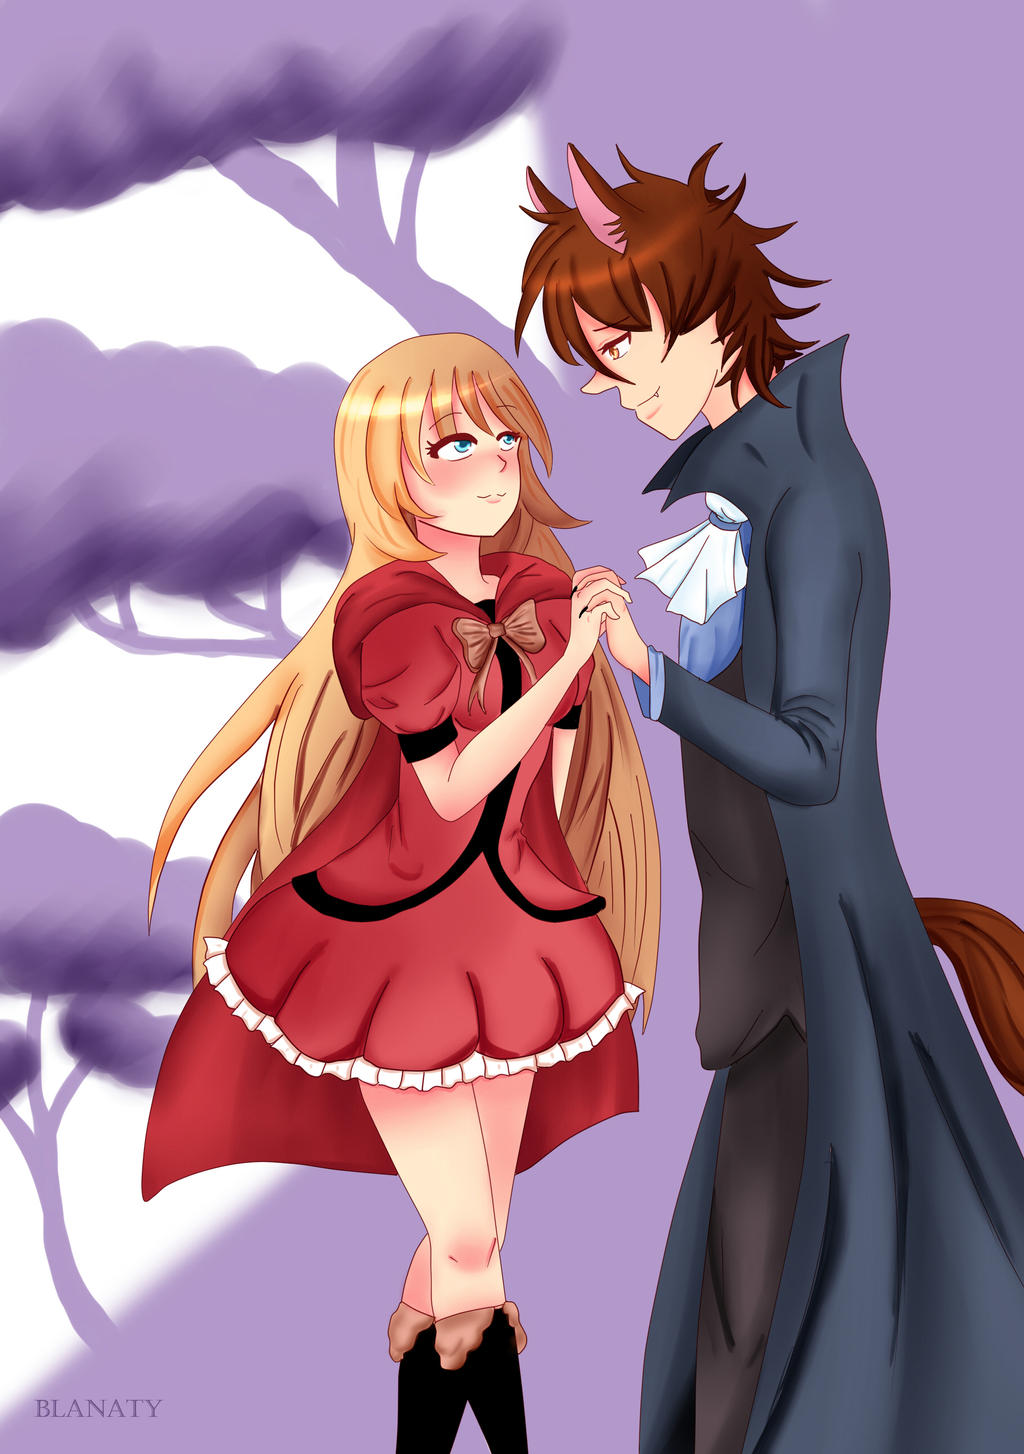 Little red riding hood and wolf anime gallery the wolf and little red riding hood by blanaty on deviantart sciox Choice Image